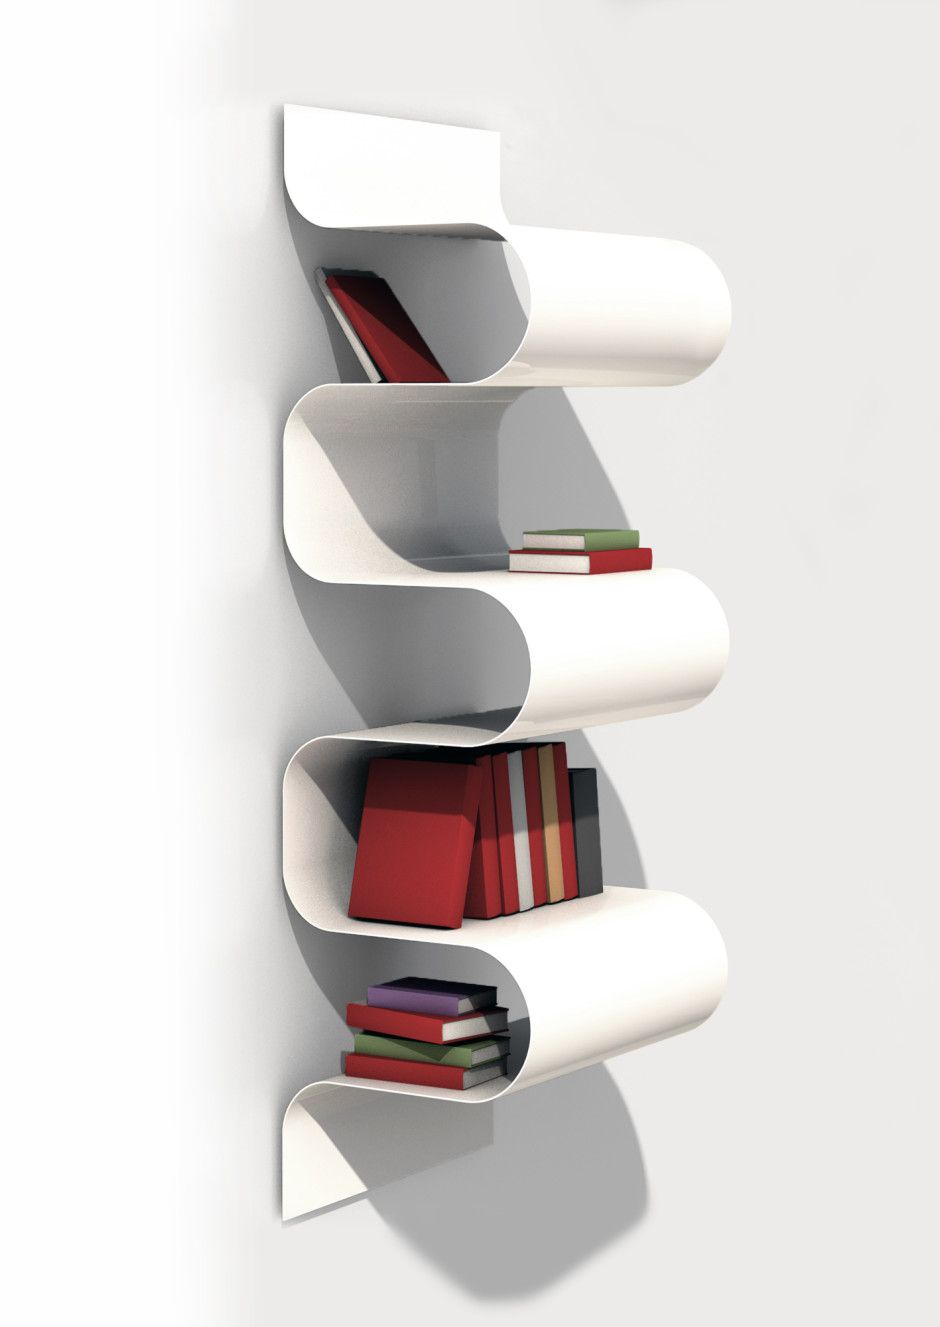 Objet En Aluminium wave aluminium bookshelfvidame creation made in france on